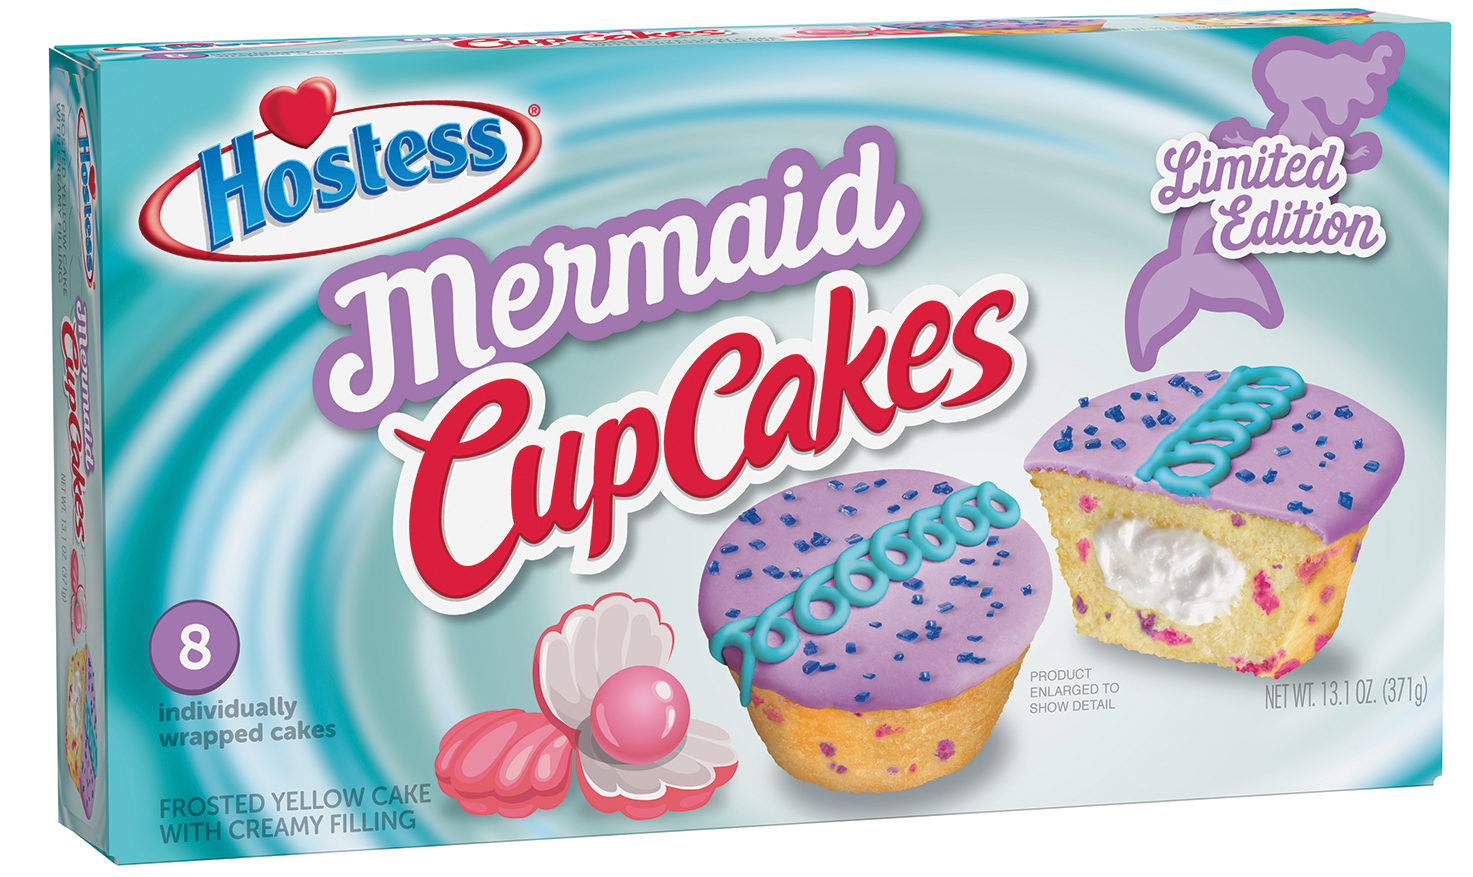 hostess is selling mint chocolate-flavored cupcakes limited-edition, just in time for st. patrick's day